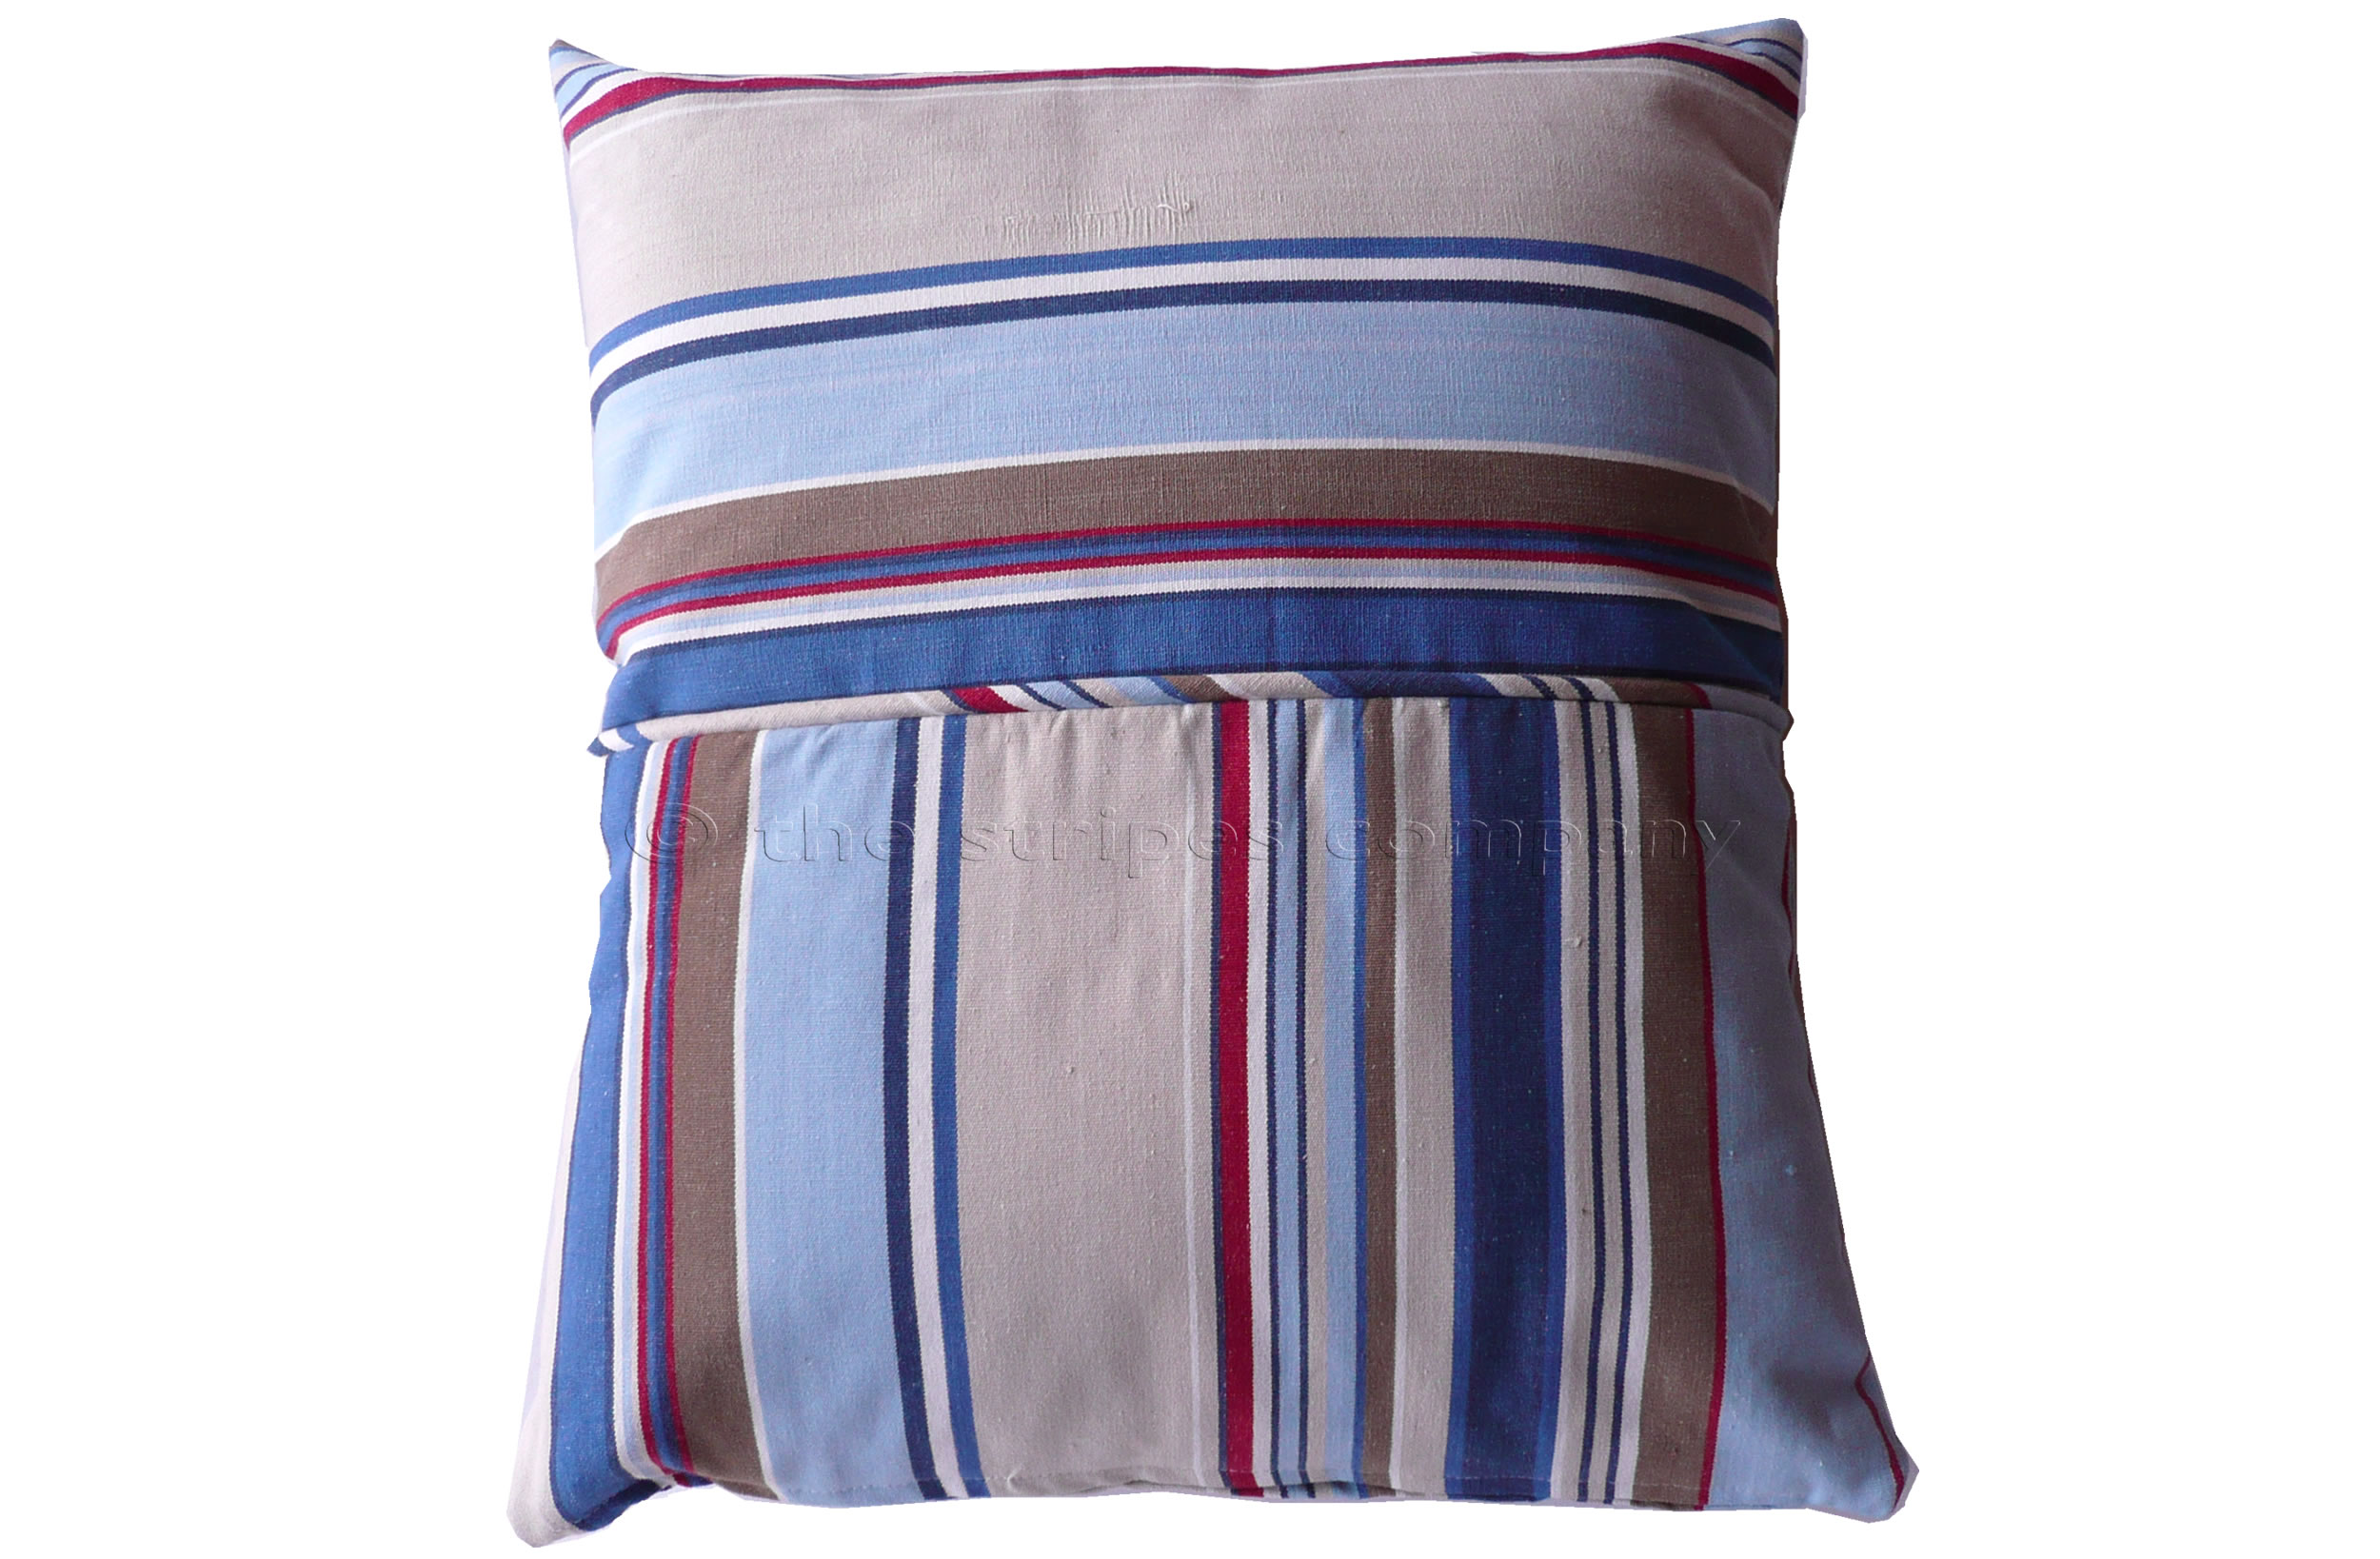 Pale Blue Striped Piped Cushions | Square Piped Cushions Trapeze Stripes